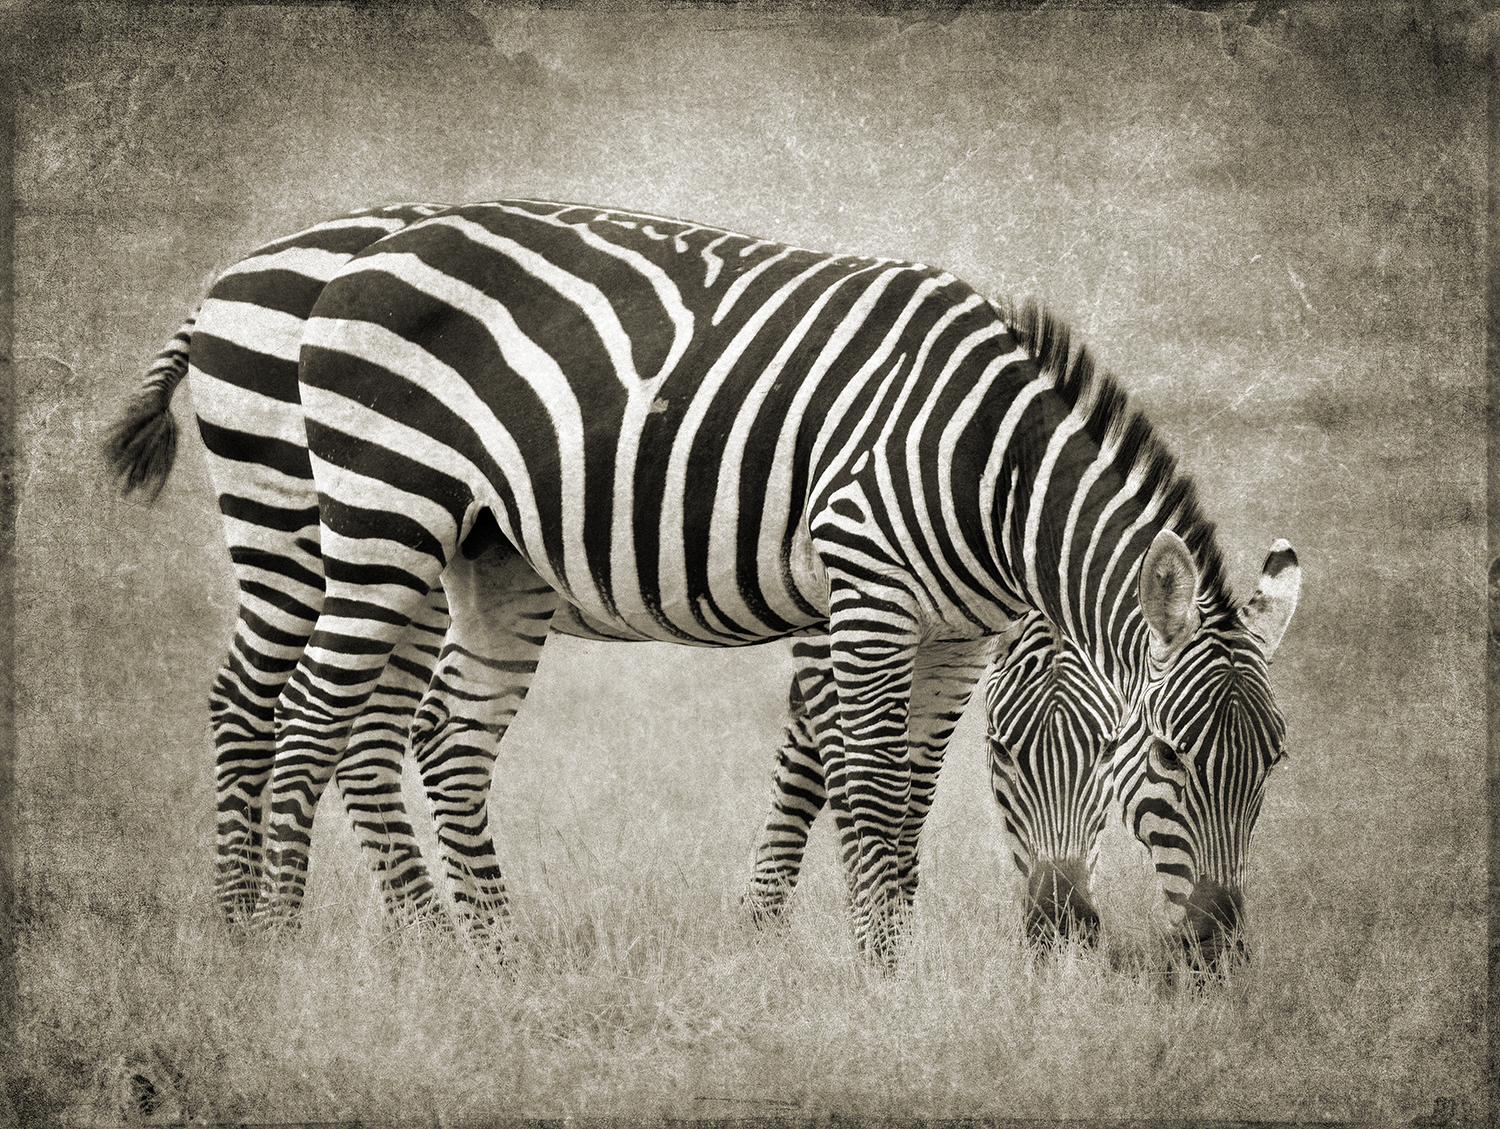 PEC_2018_Two Zebra_5288 copy.jpg